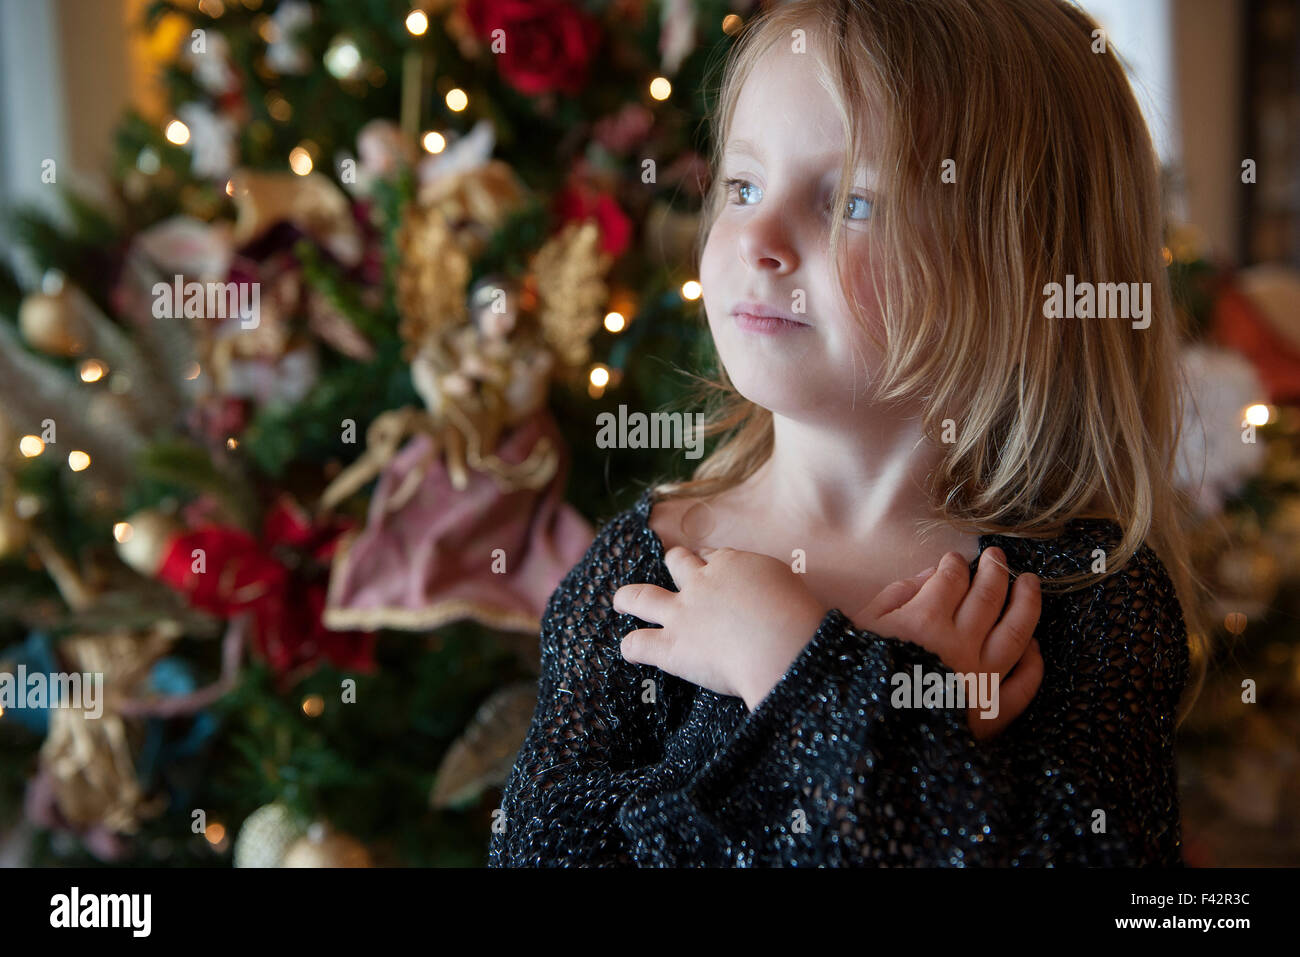 Girl daydreaming with Christmas tree in background - Stock Image